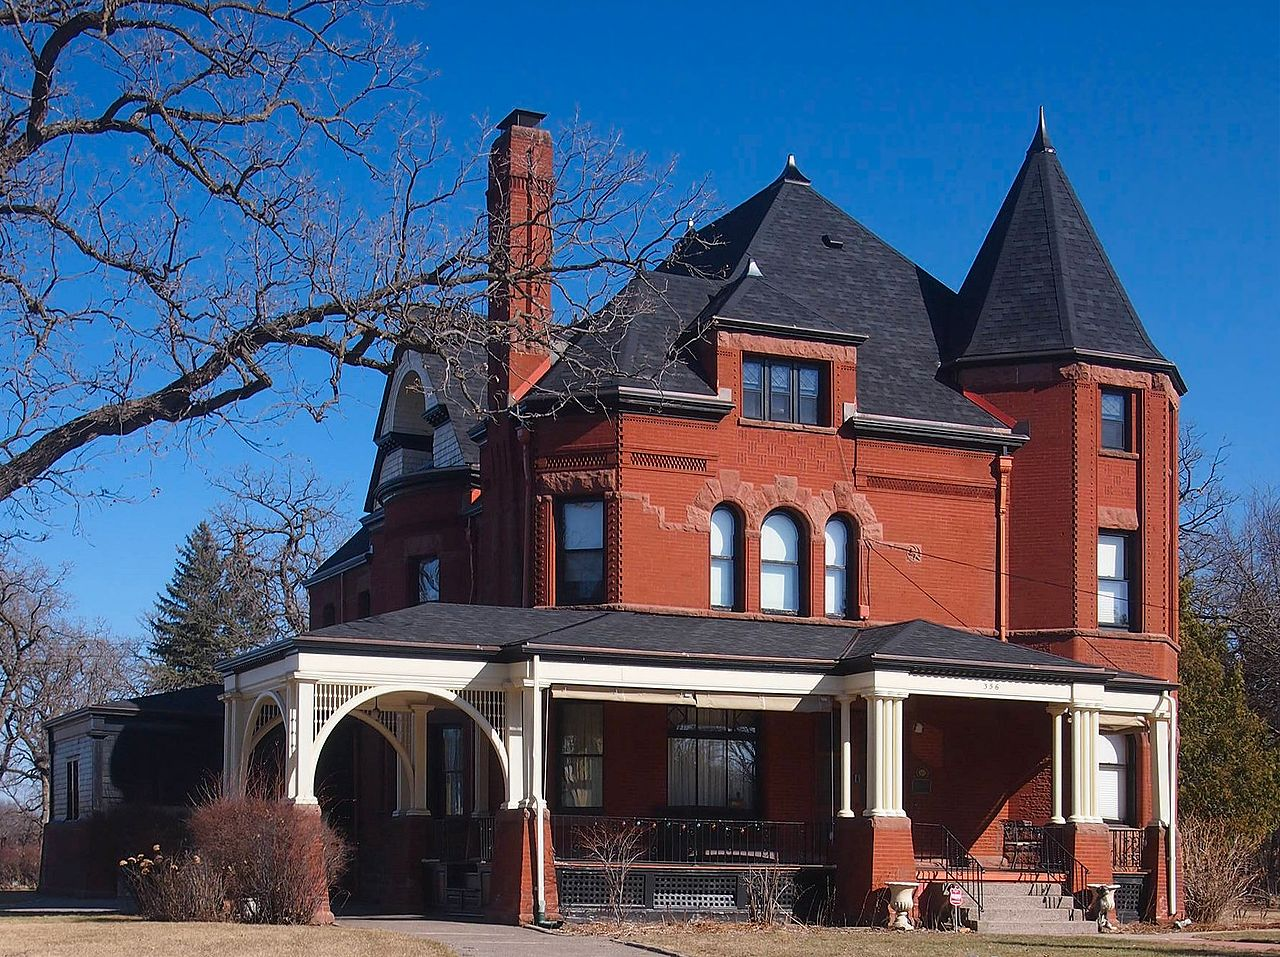 The Nehemiah P. Clarke House is a fine example of Queen Anne architecture and was built in 1893.